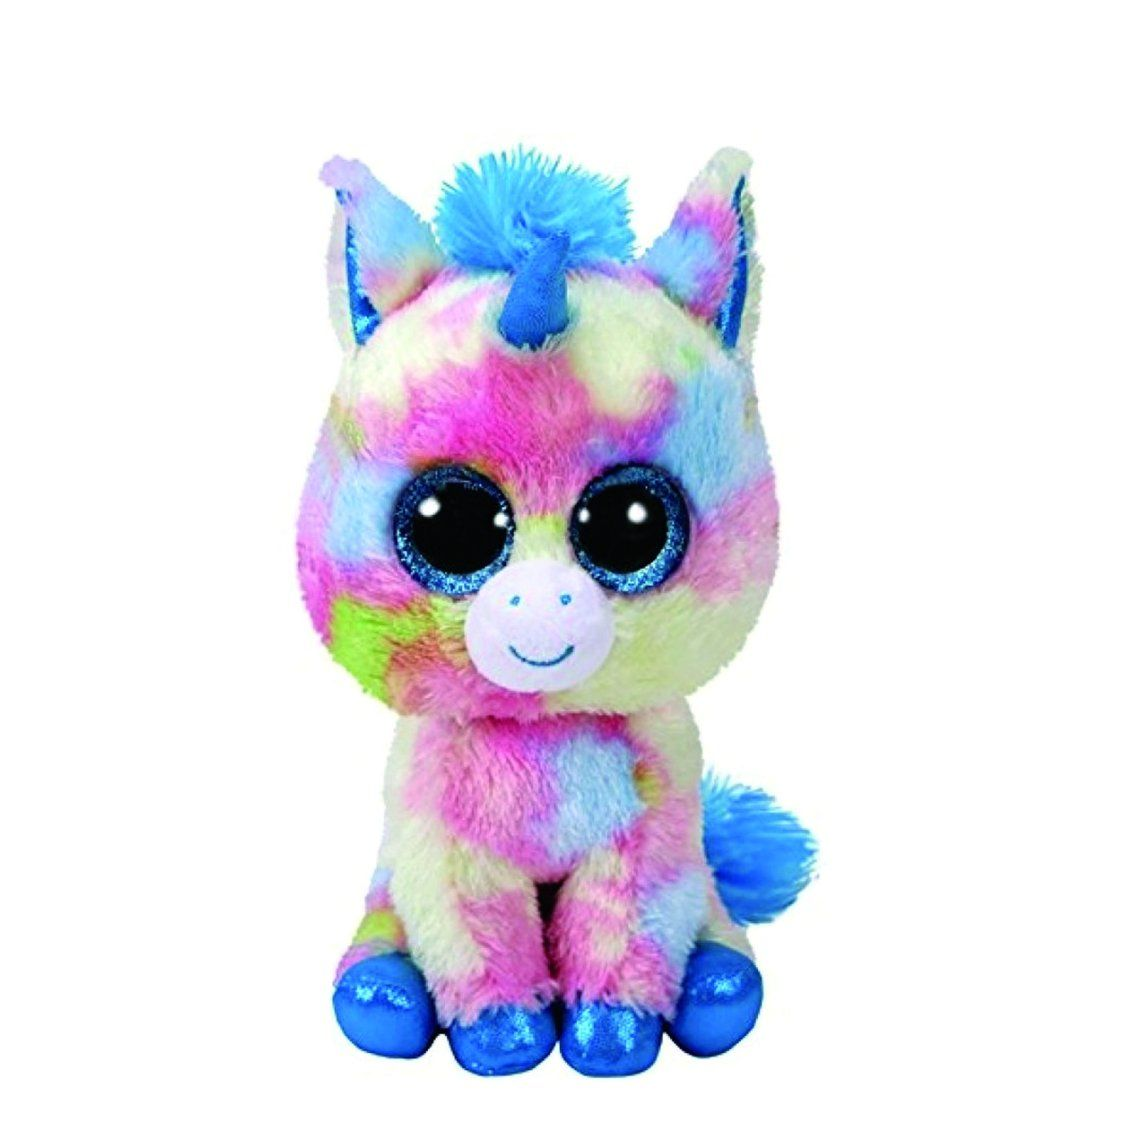 412535f3749 TY Beanie Boo Small Blitz the Unicorn Soft Toy